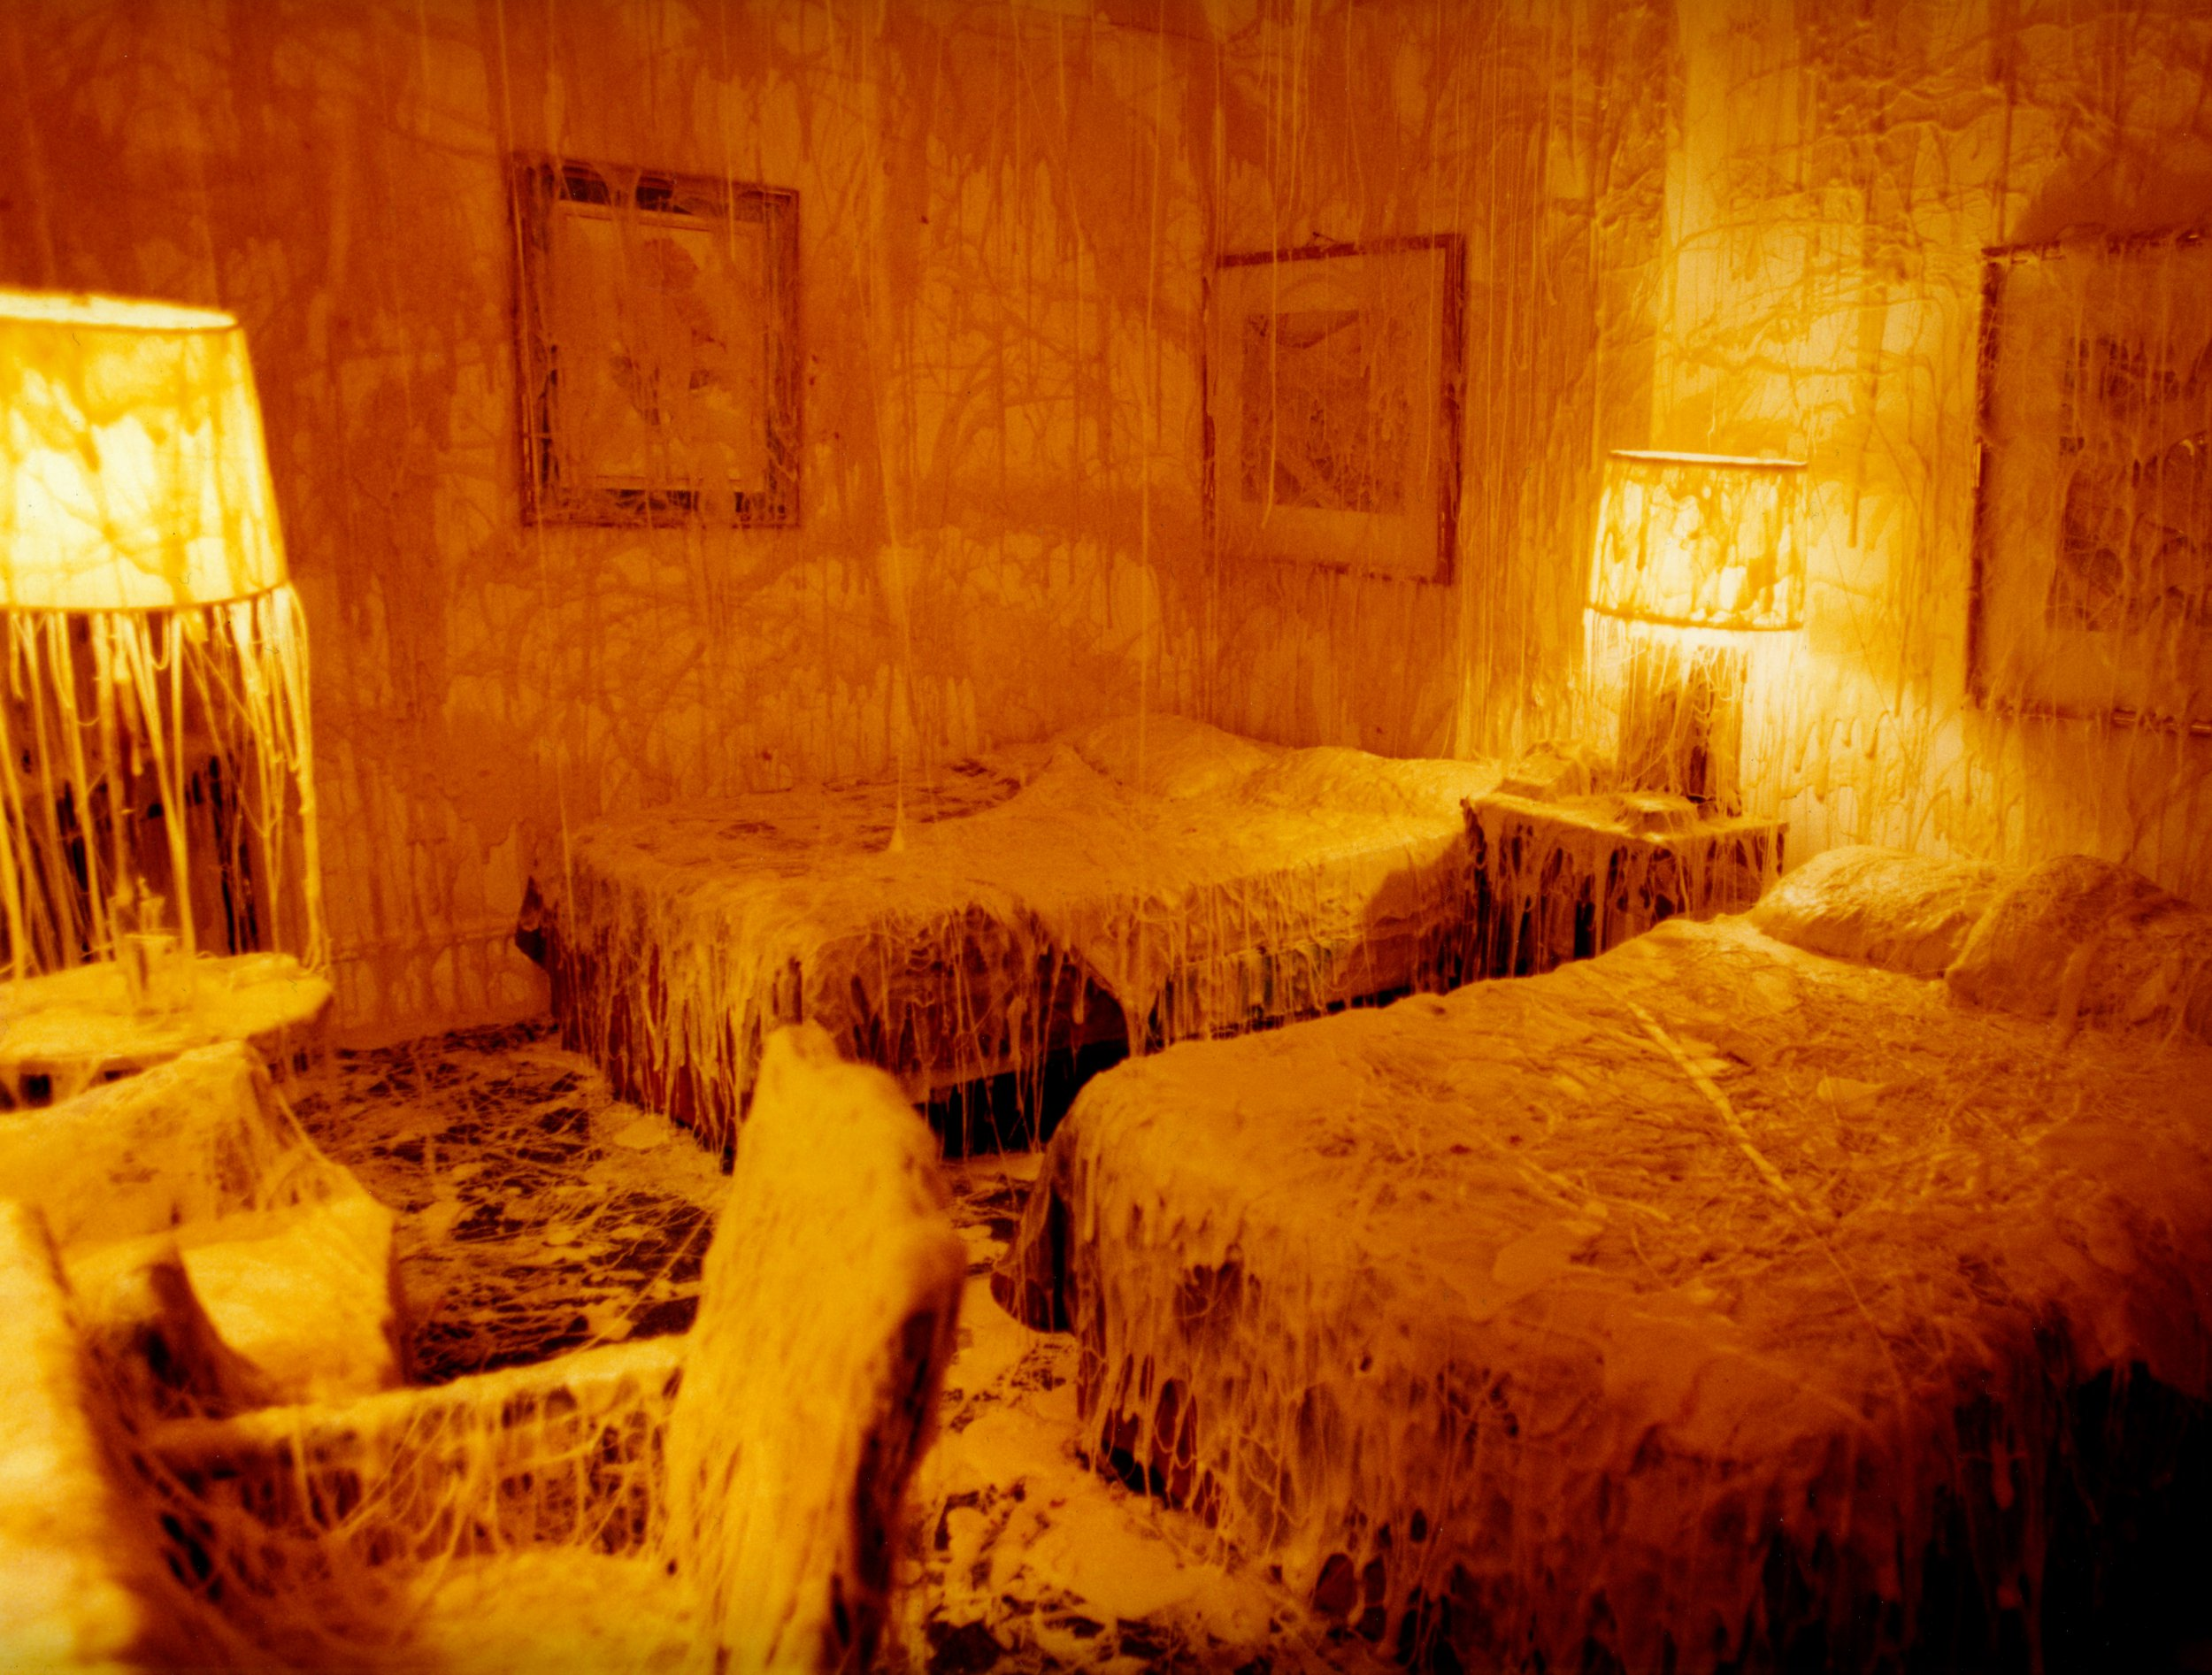 THESE remarkable ???cheese installations??? are every cheese lover???s dream with pounds of cheese melted on people, furniture and even entire houses. Incredible images show the exterior of a house completely covered in melted cheese, a bedroom and living room covered in it and even a bathroom lathered in dairy product. Other stunning shots show a woman wearing a dress covered in layers of cheese, a cheese-covered blazer hanging up and boots drenched in cheese. Italian-Canadian artist and photographer, Cosimo Cavallaro is famous for his ???cheese installations???. One of his most famous pieces of work was covering a twin suite at the Washington Jefferson Hotel, on New York???s upper west, with 1000 pounds of melted cheese. Cosimo Cavallaro / Universal Features / mediadrumimages.com